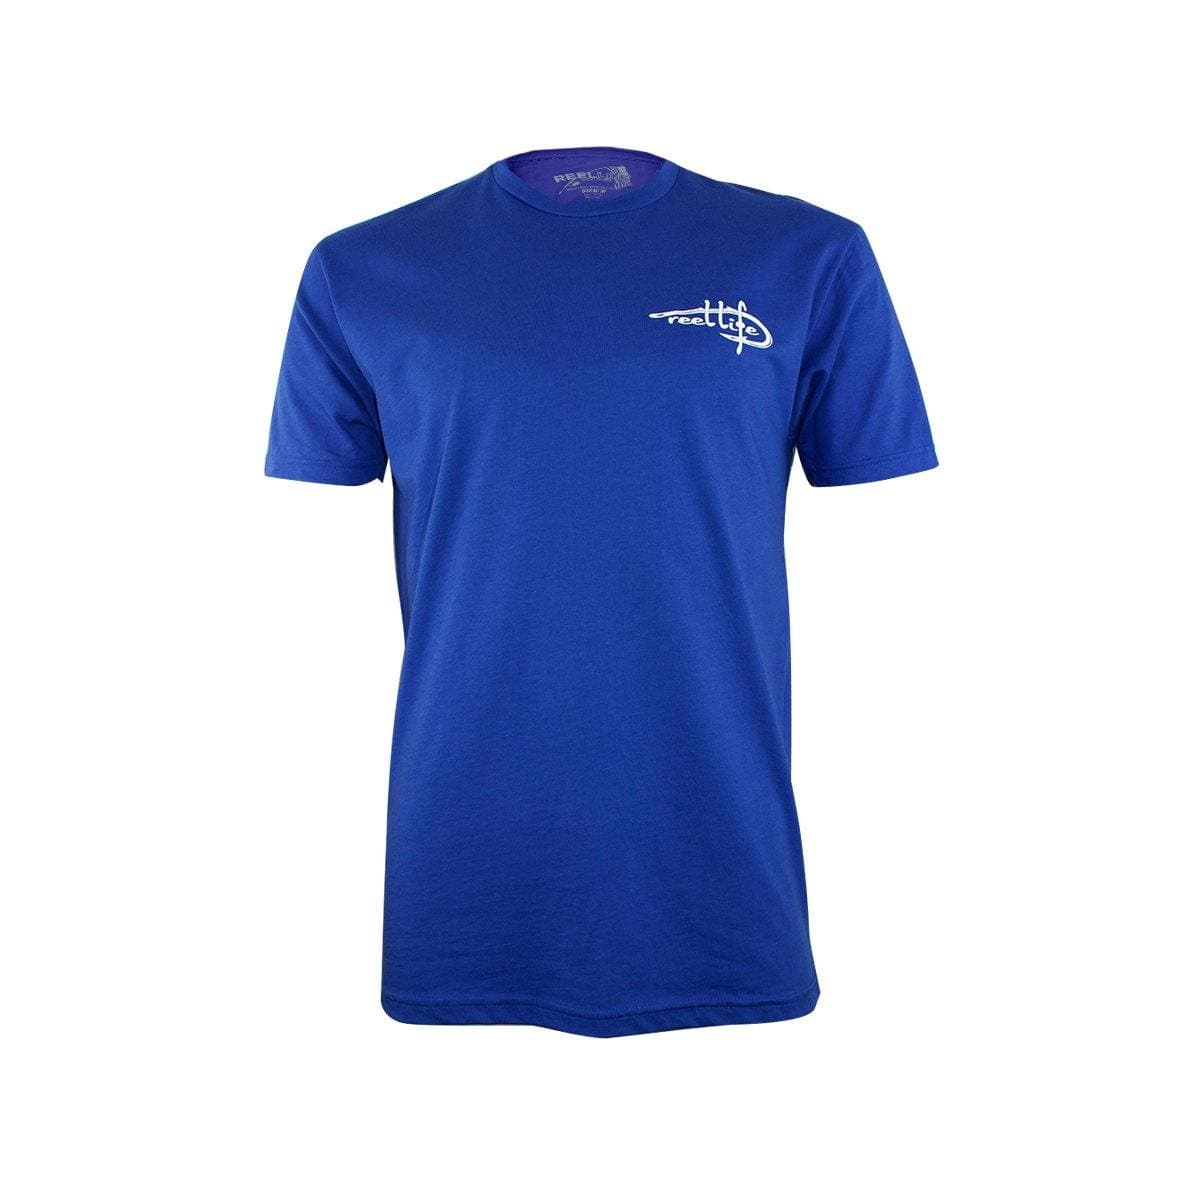 "Reel Life Men's Short Sleeve Graphic Tee ""Hooked on USA""- Royal Blue - Reel Life"